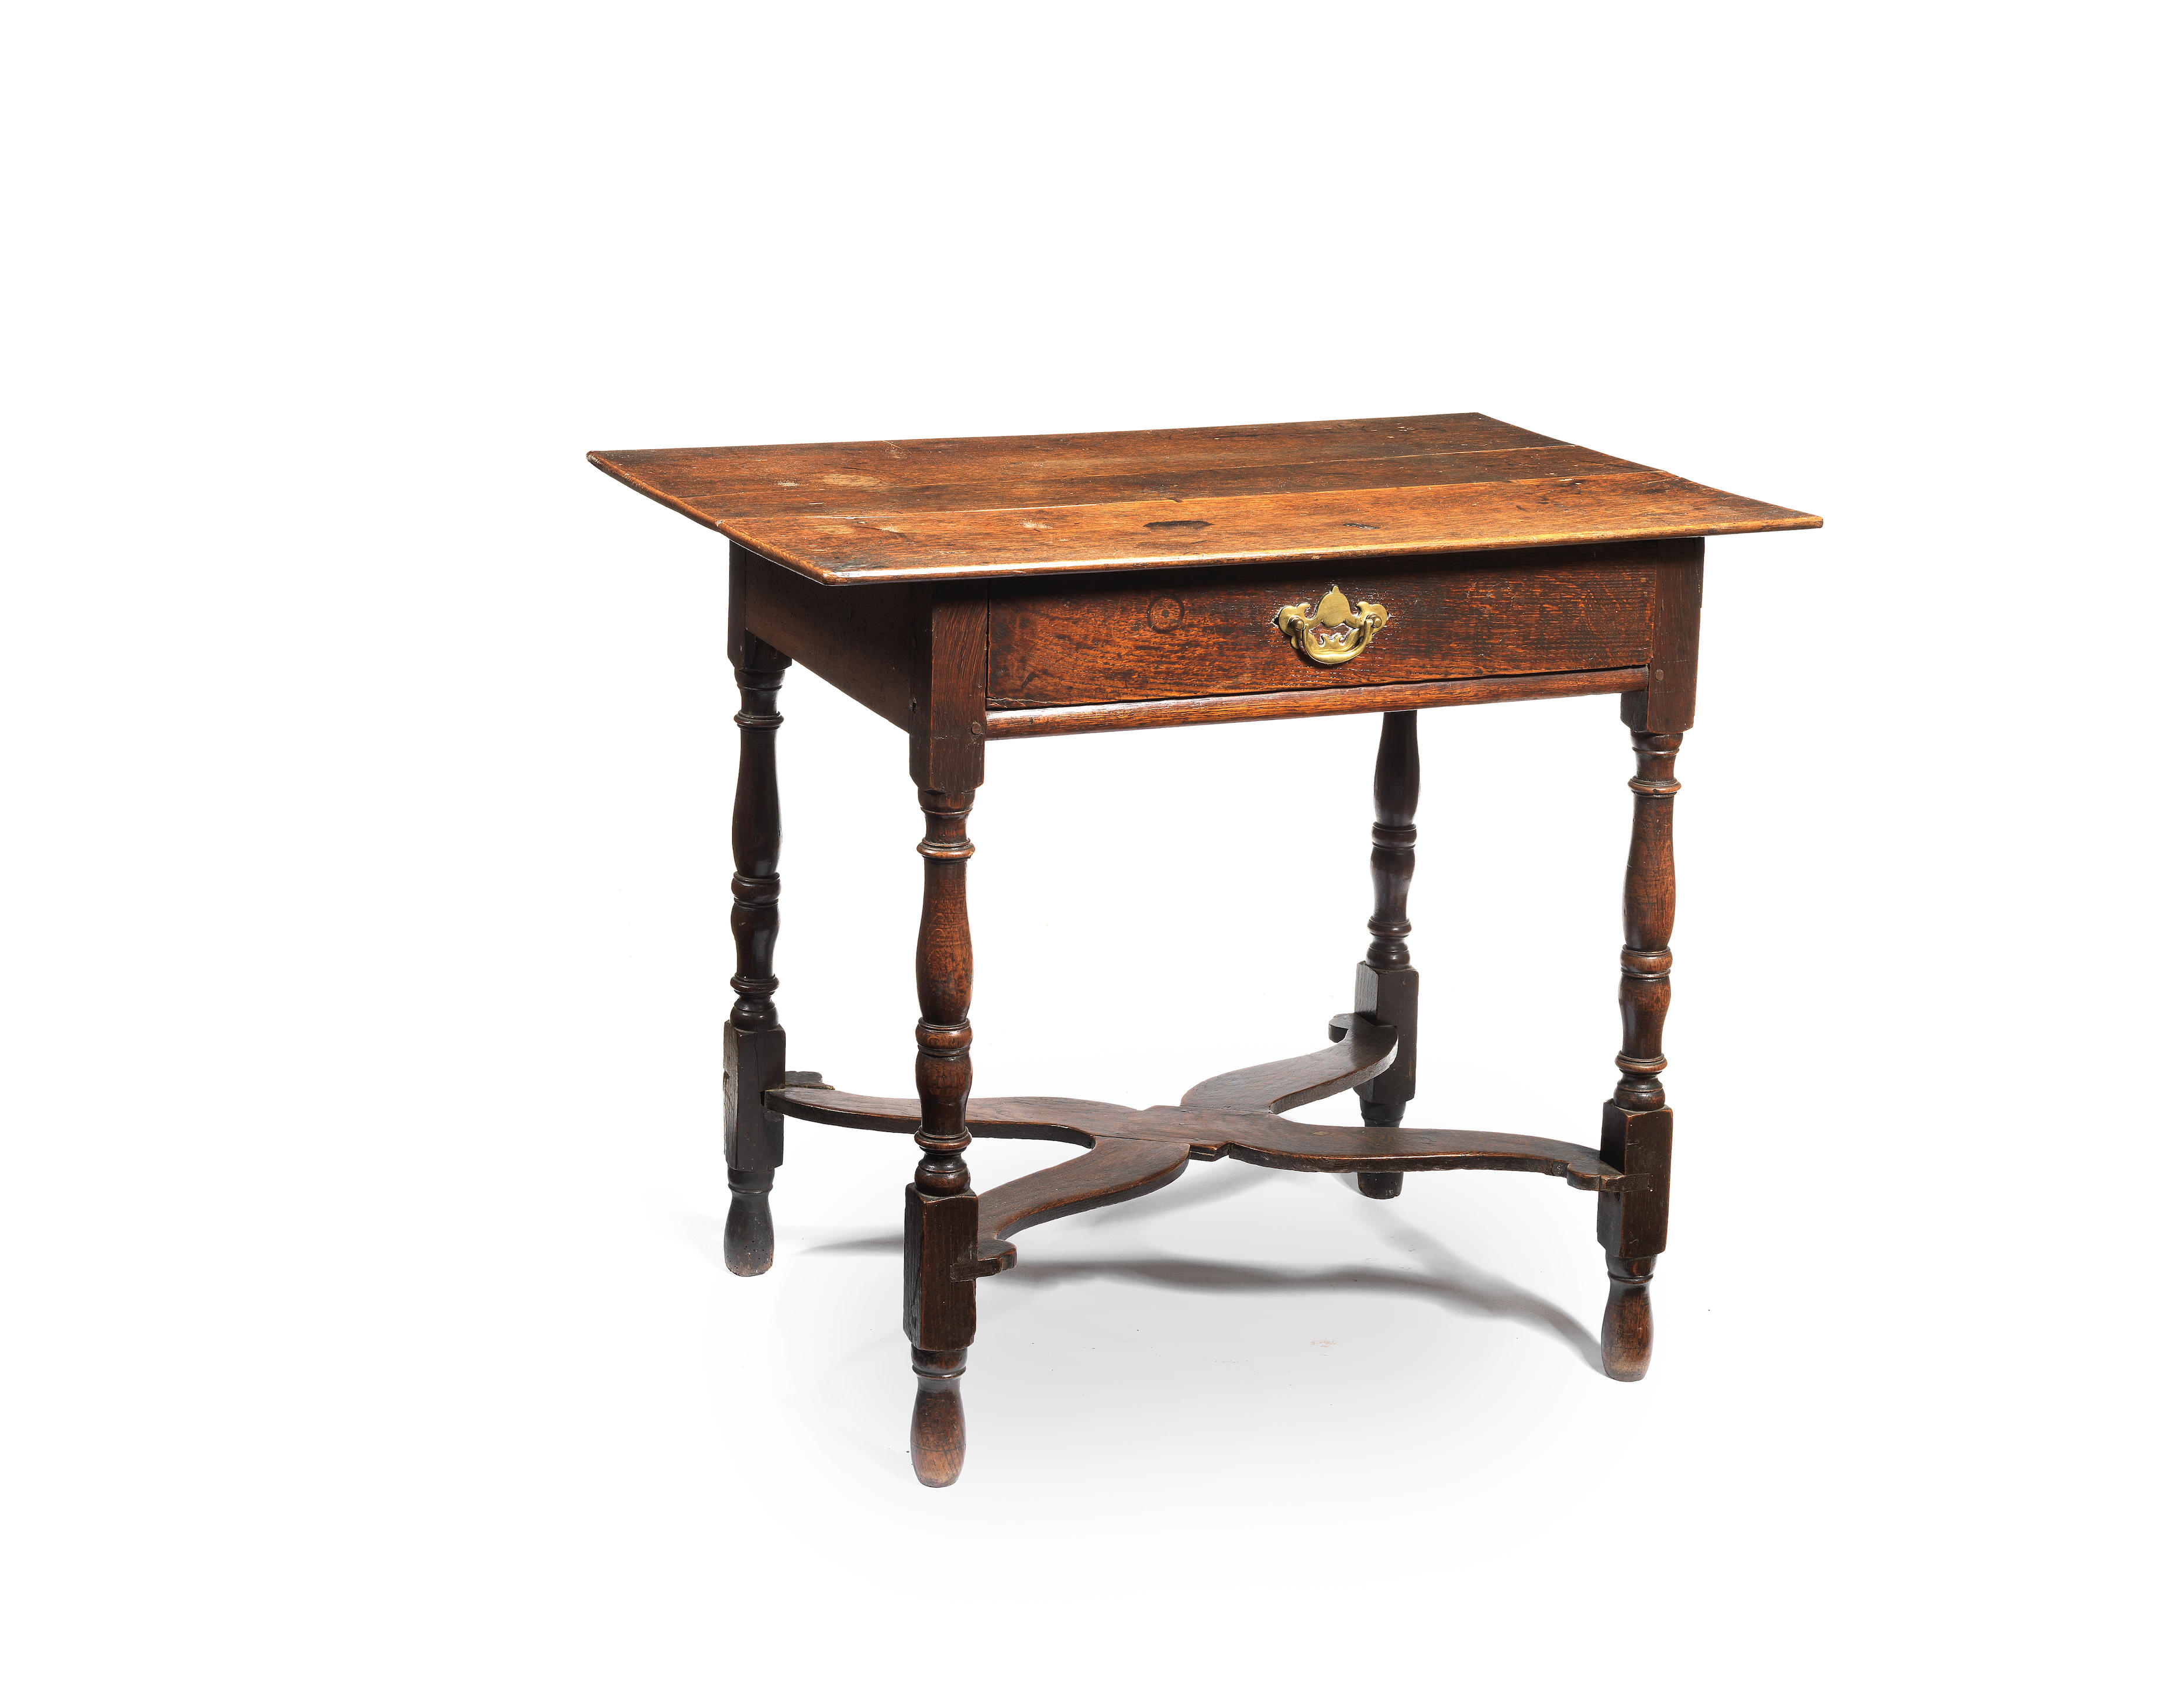 A joined oak side table, English, circa 1700